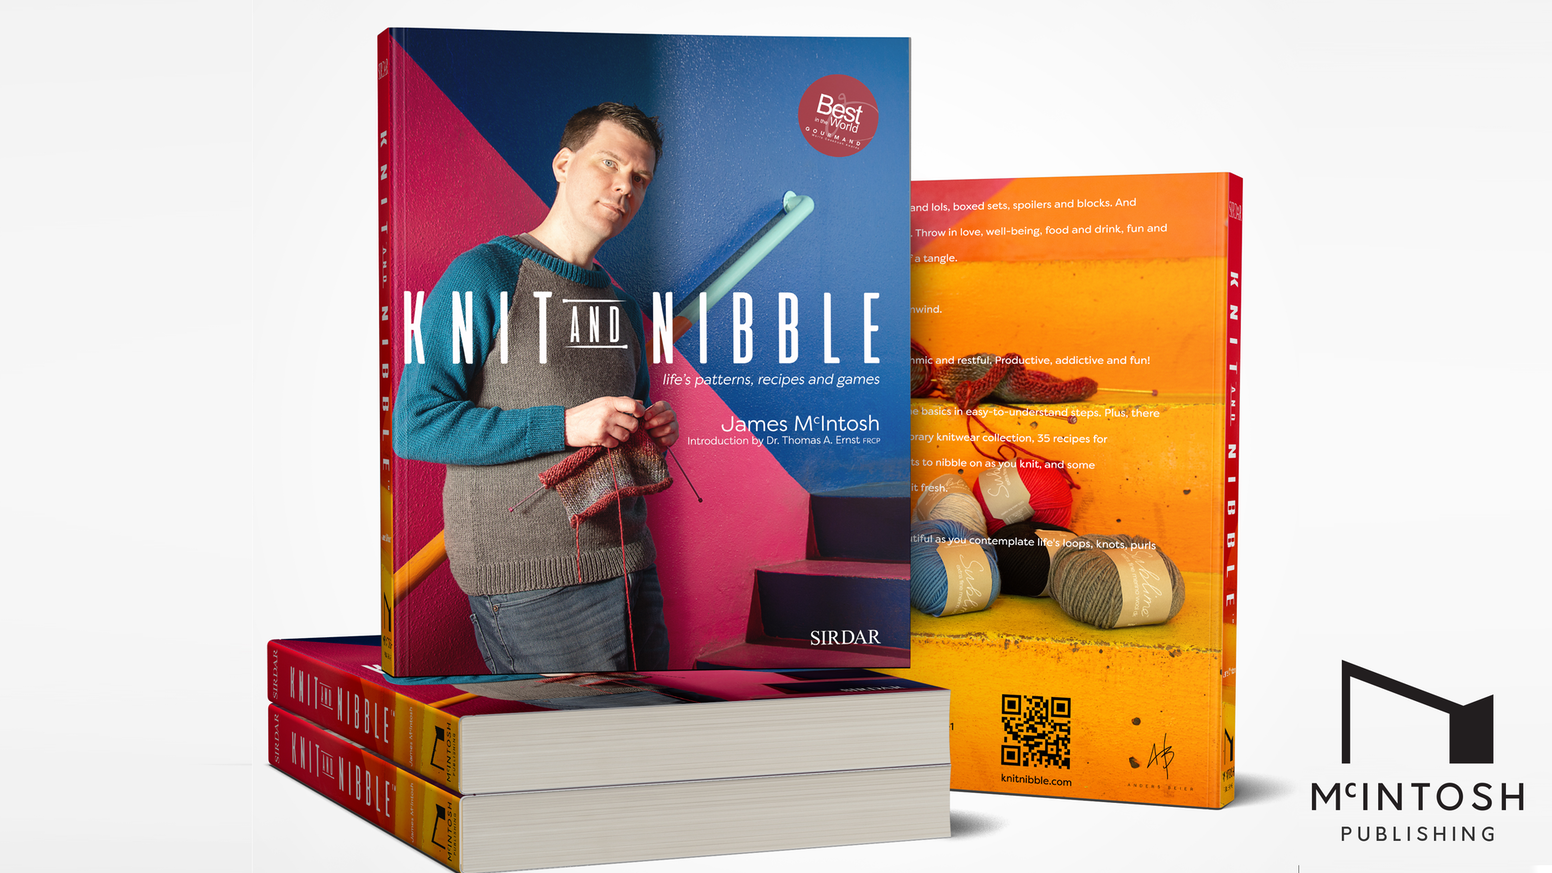 Knit and Nibble, a book about knitting, cooking and mindfulness to add colour to your clothes, food and mind.